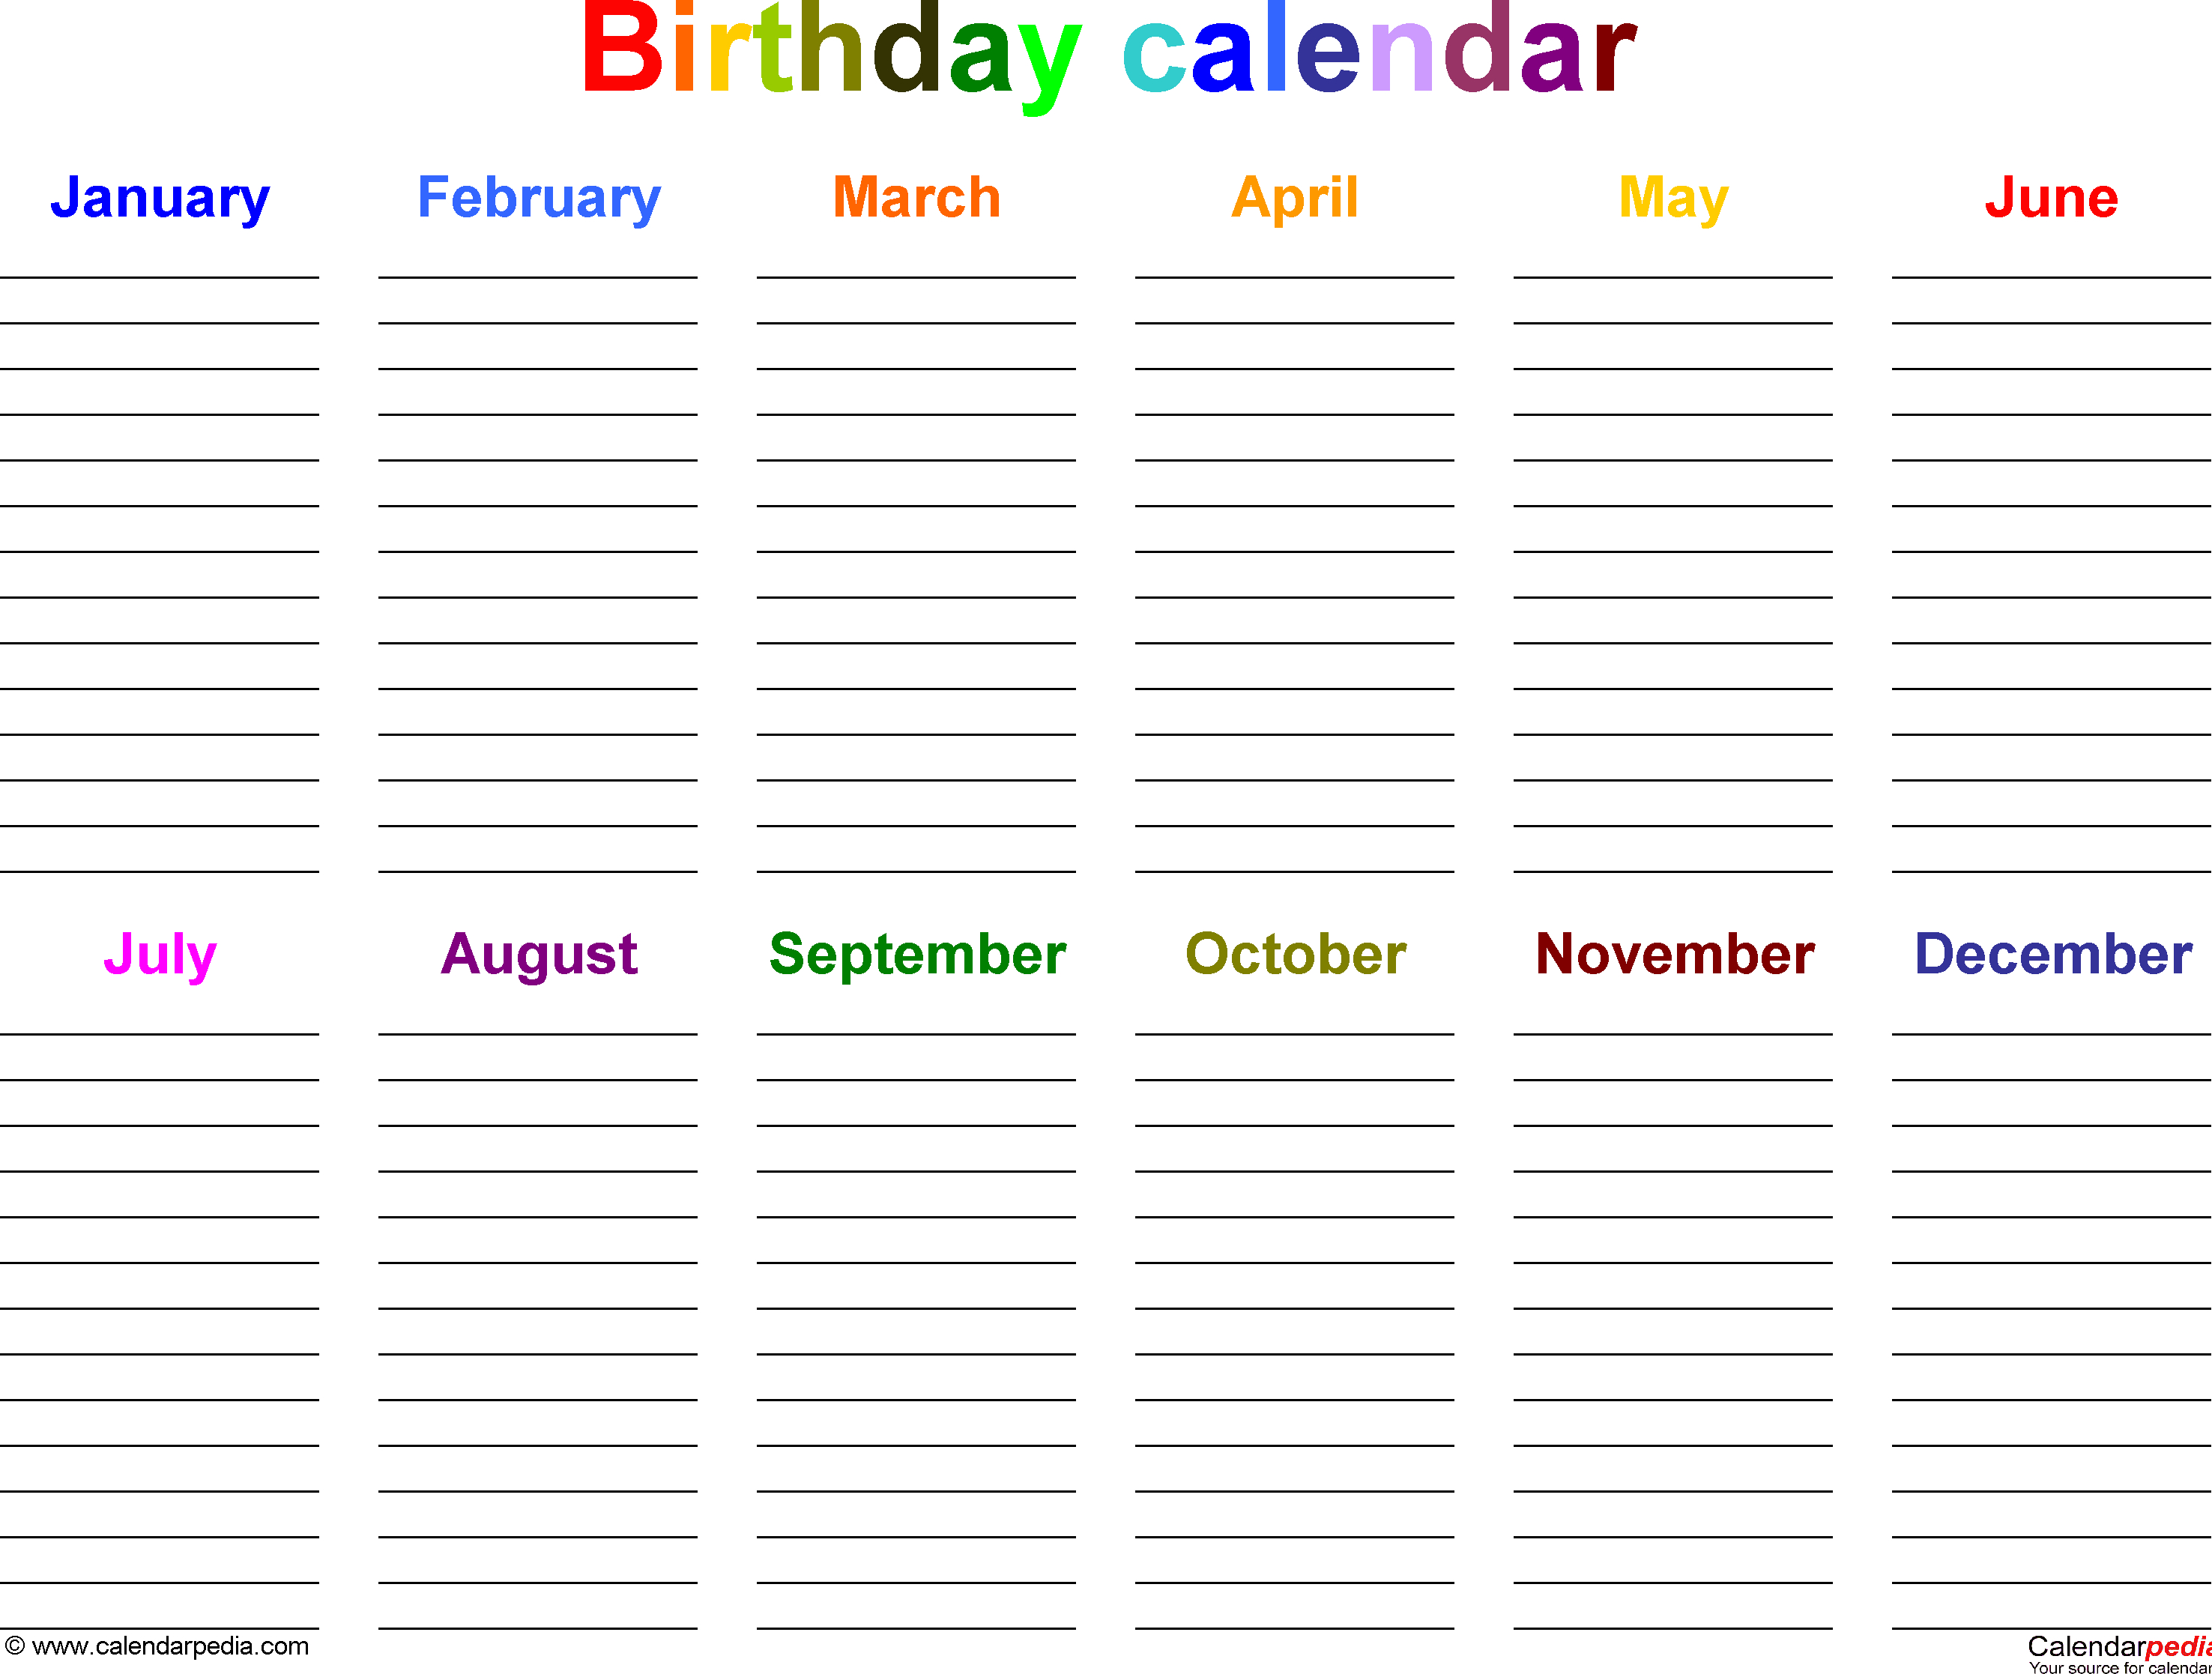 Excel Template For Birthday Calendar In Color (Landscape Orientation intended for Monthly Birthday Calendar Template